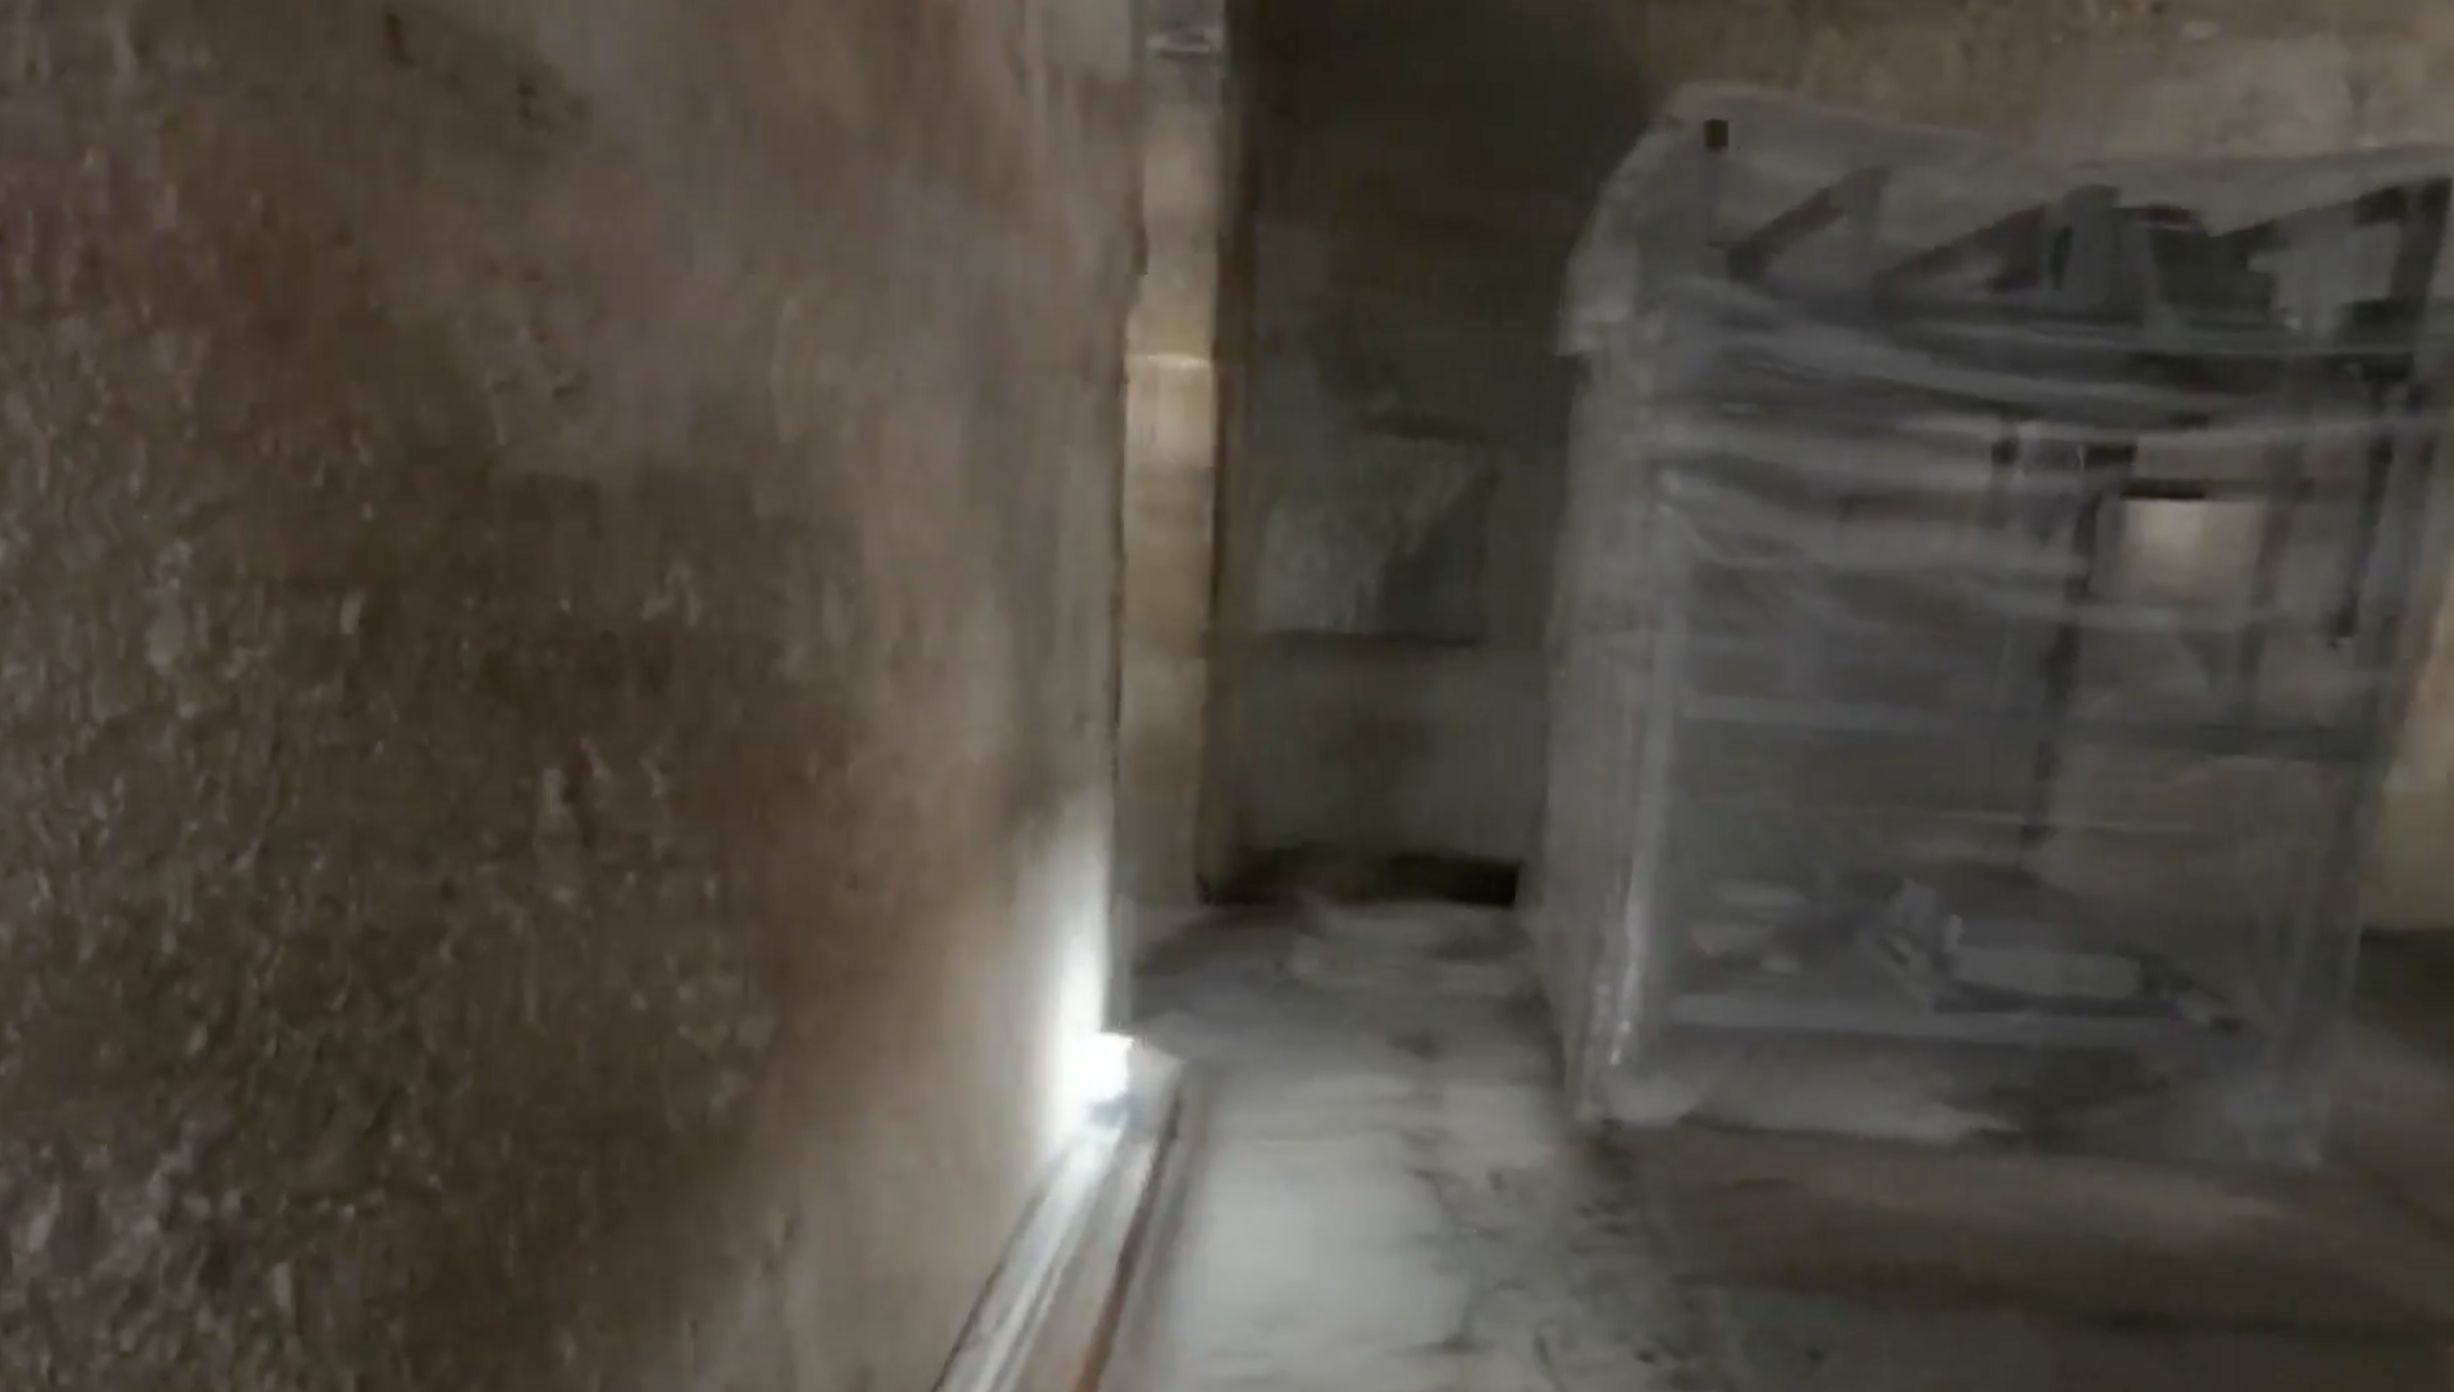 <strong>The VR tour allows visitors to tour&nbsp;parts of the pyramids not usually open to the public&nbsp;</strong>